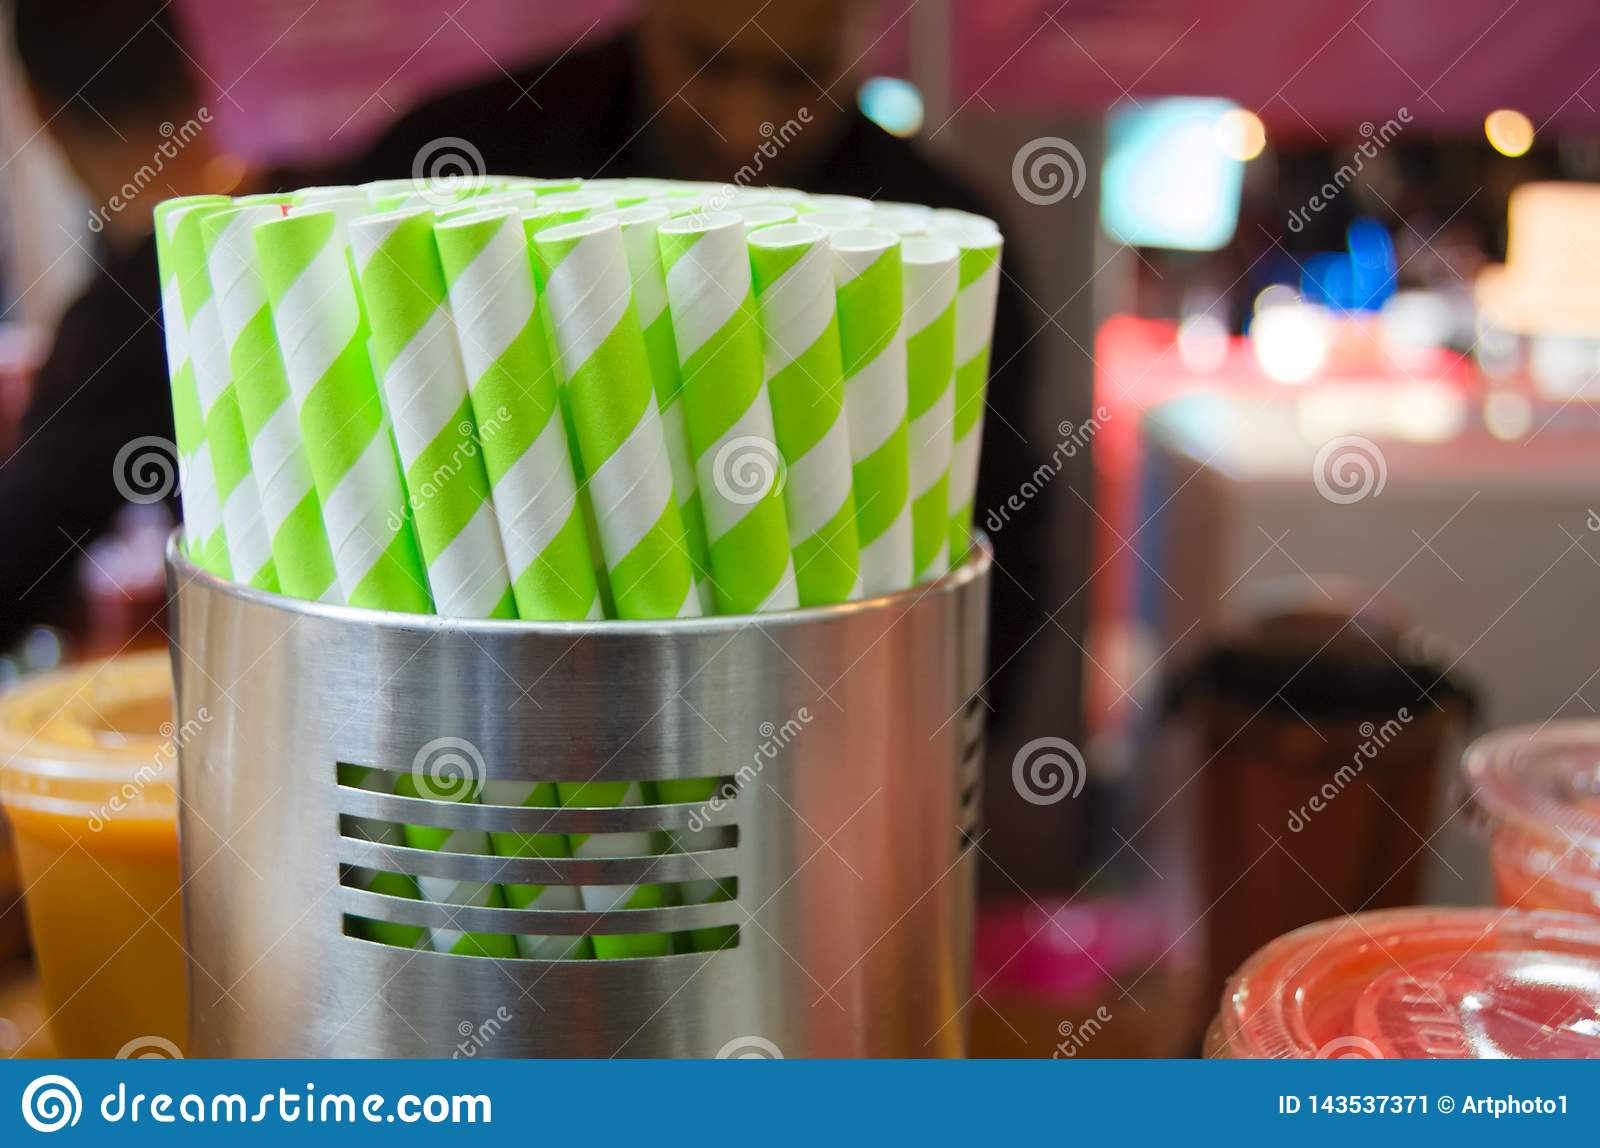 Drinking straws in container